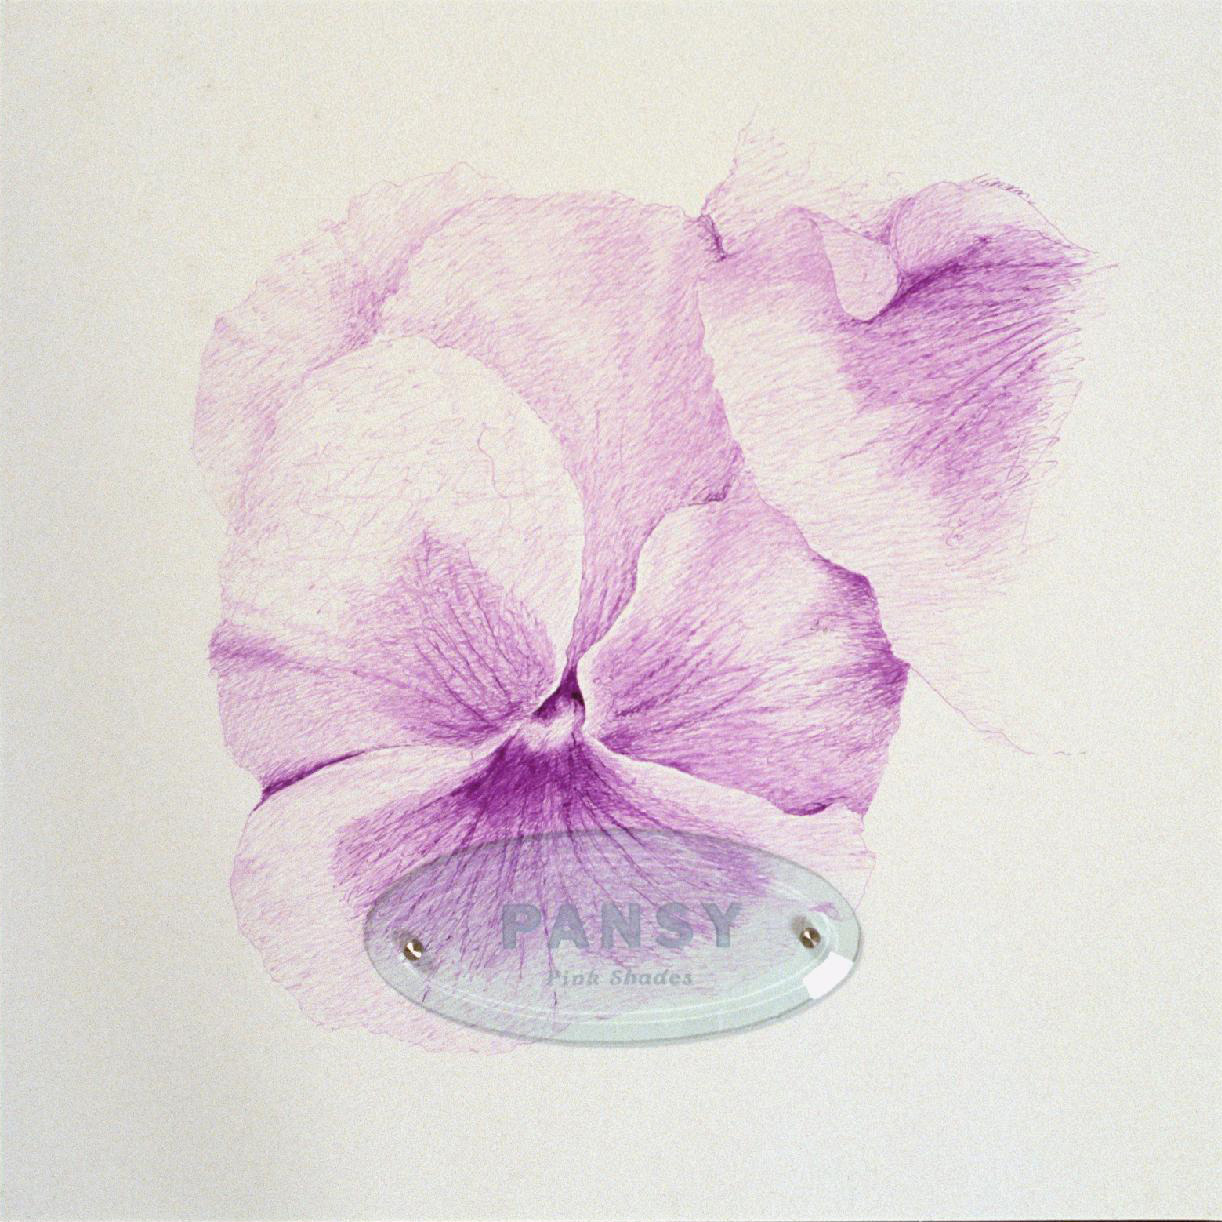 "Pansy Pink Shades, 20"" x 20"" (50.8cm x 50.8cm), ink on paper, sandblasted glass, bolts"